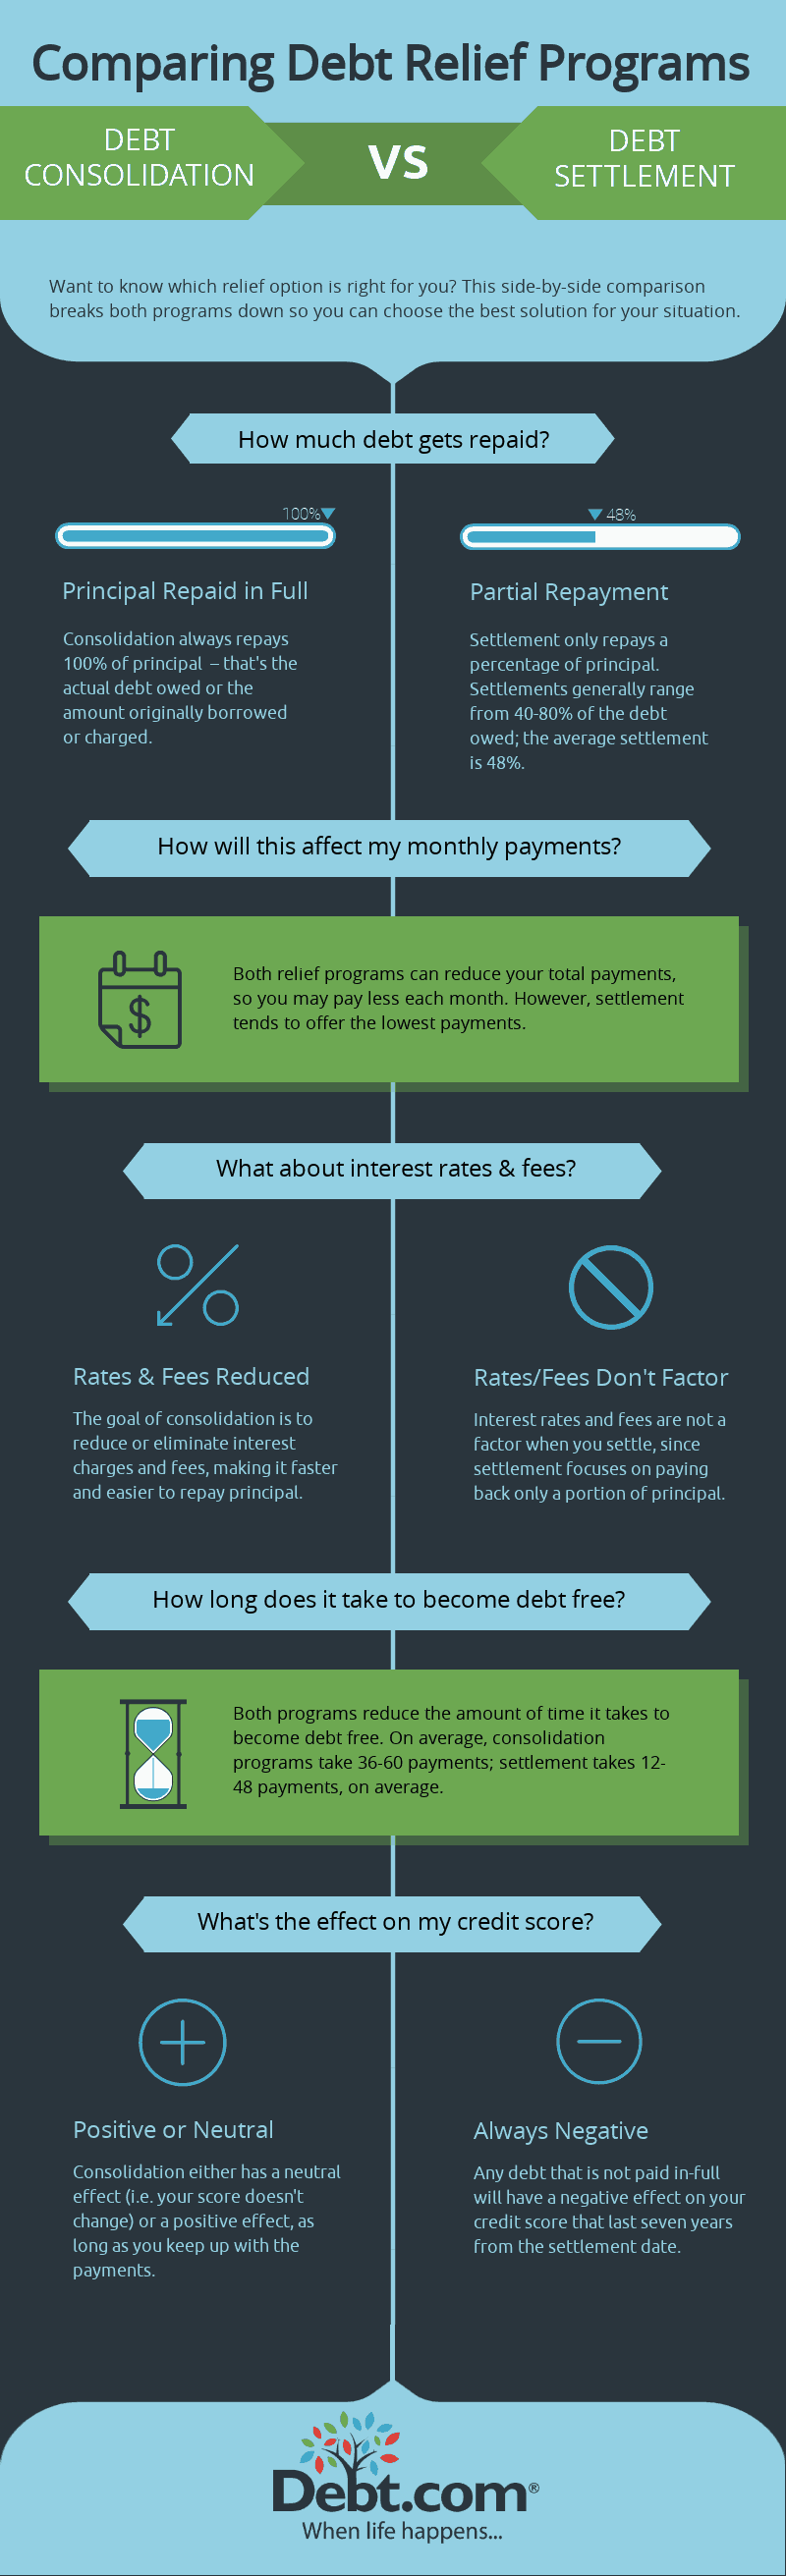 This infographic compares debt consolidation and debt settlement programs side-by-side